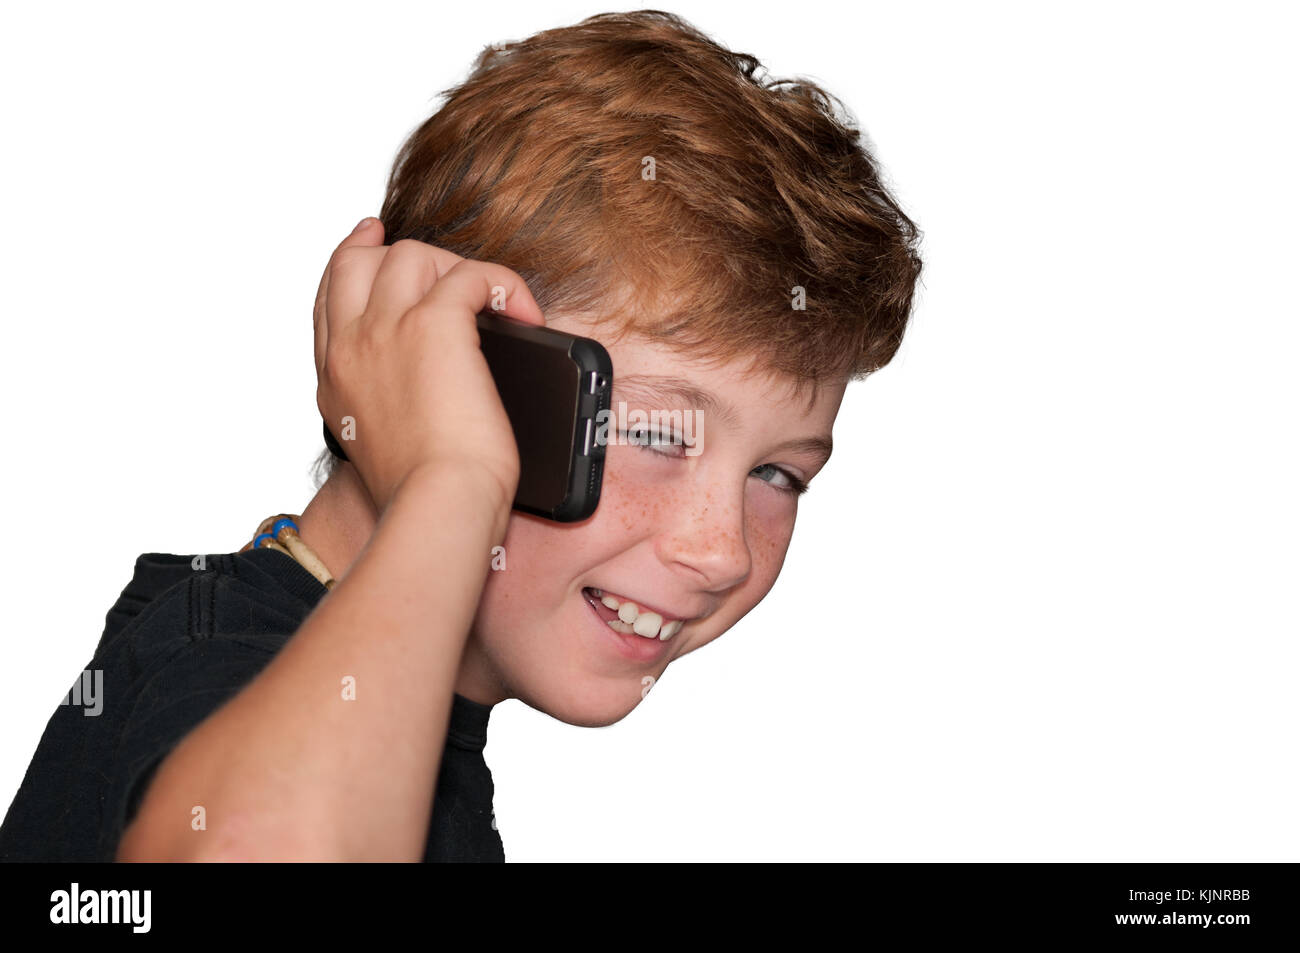 Young pre-teen boy with red hair smiling while talking on a smart cell phone. - Stock Image